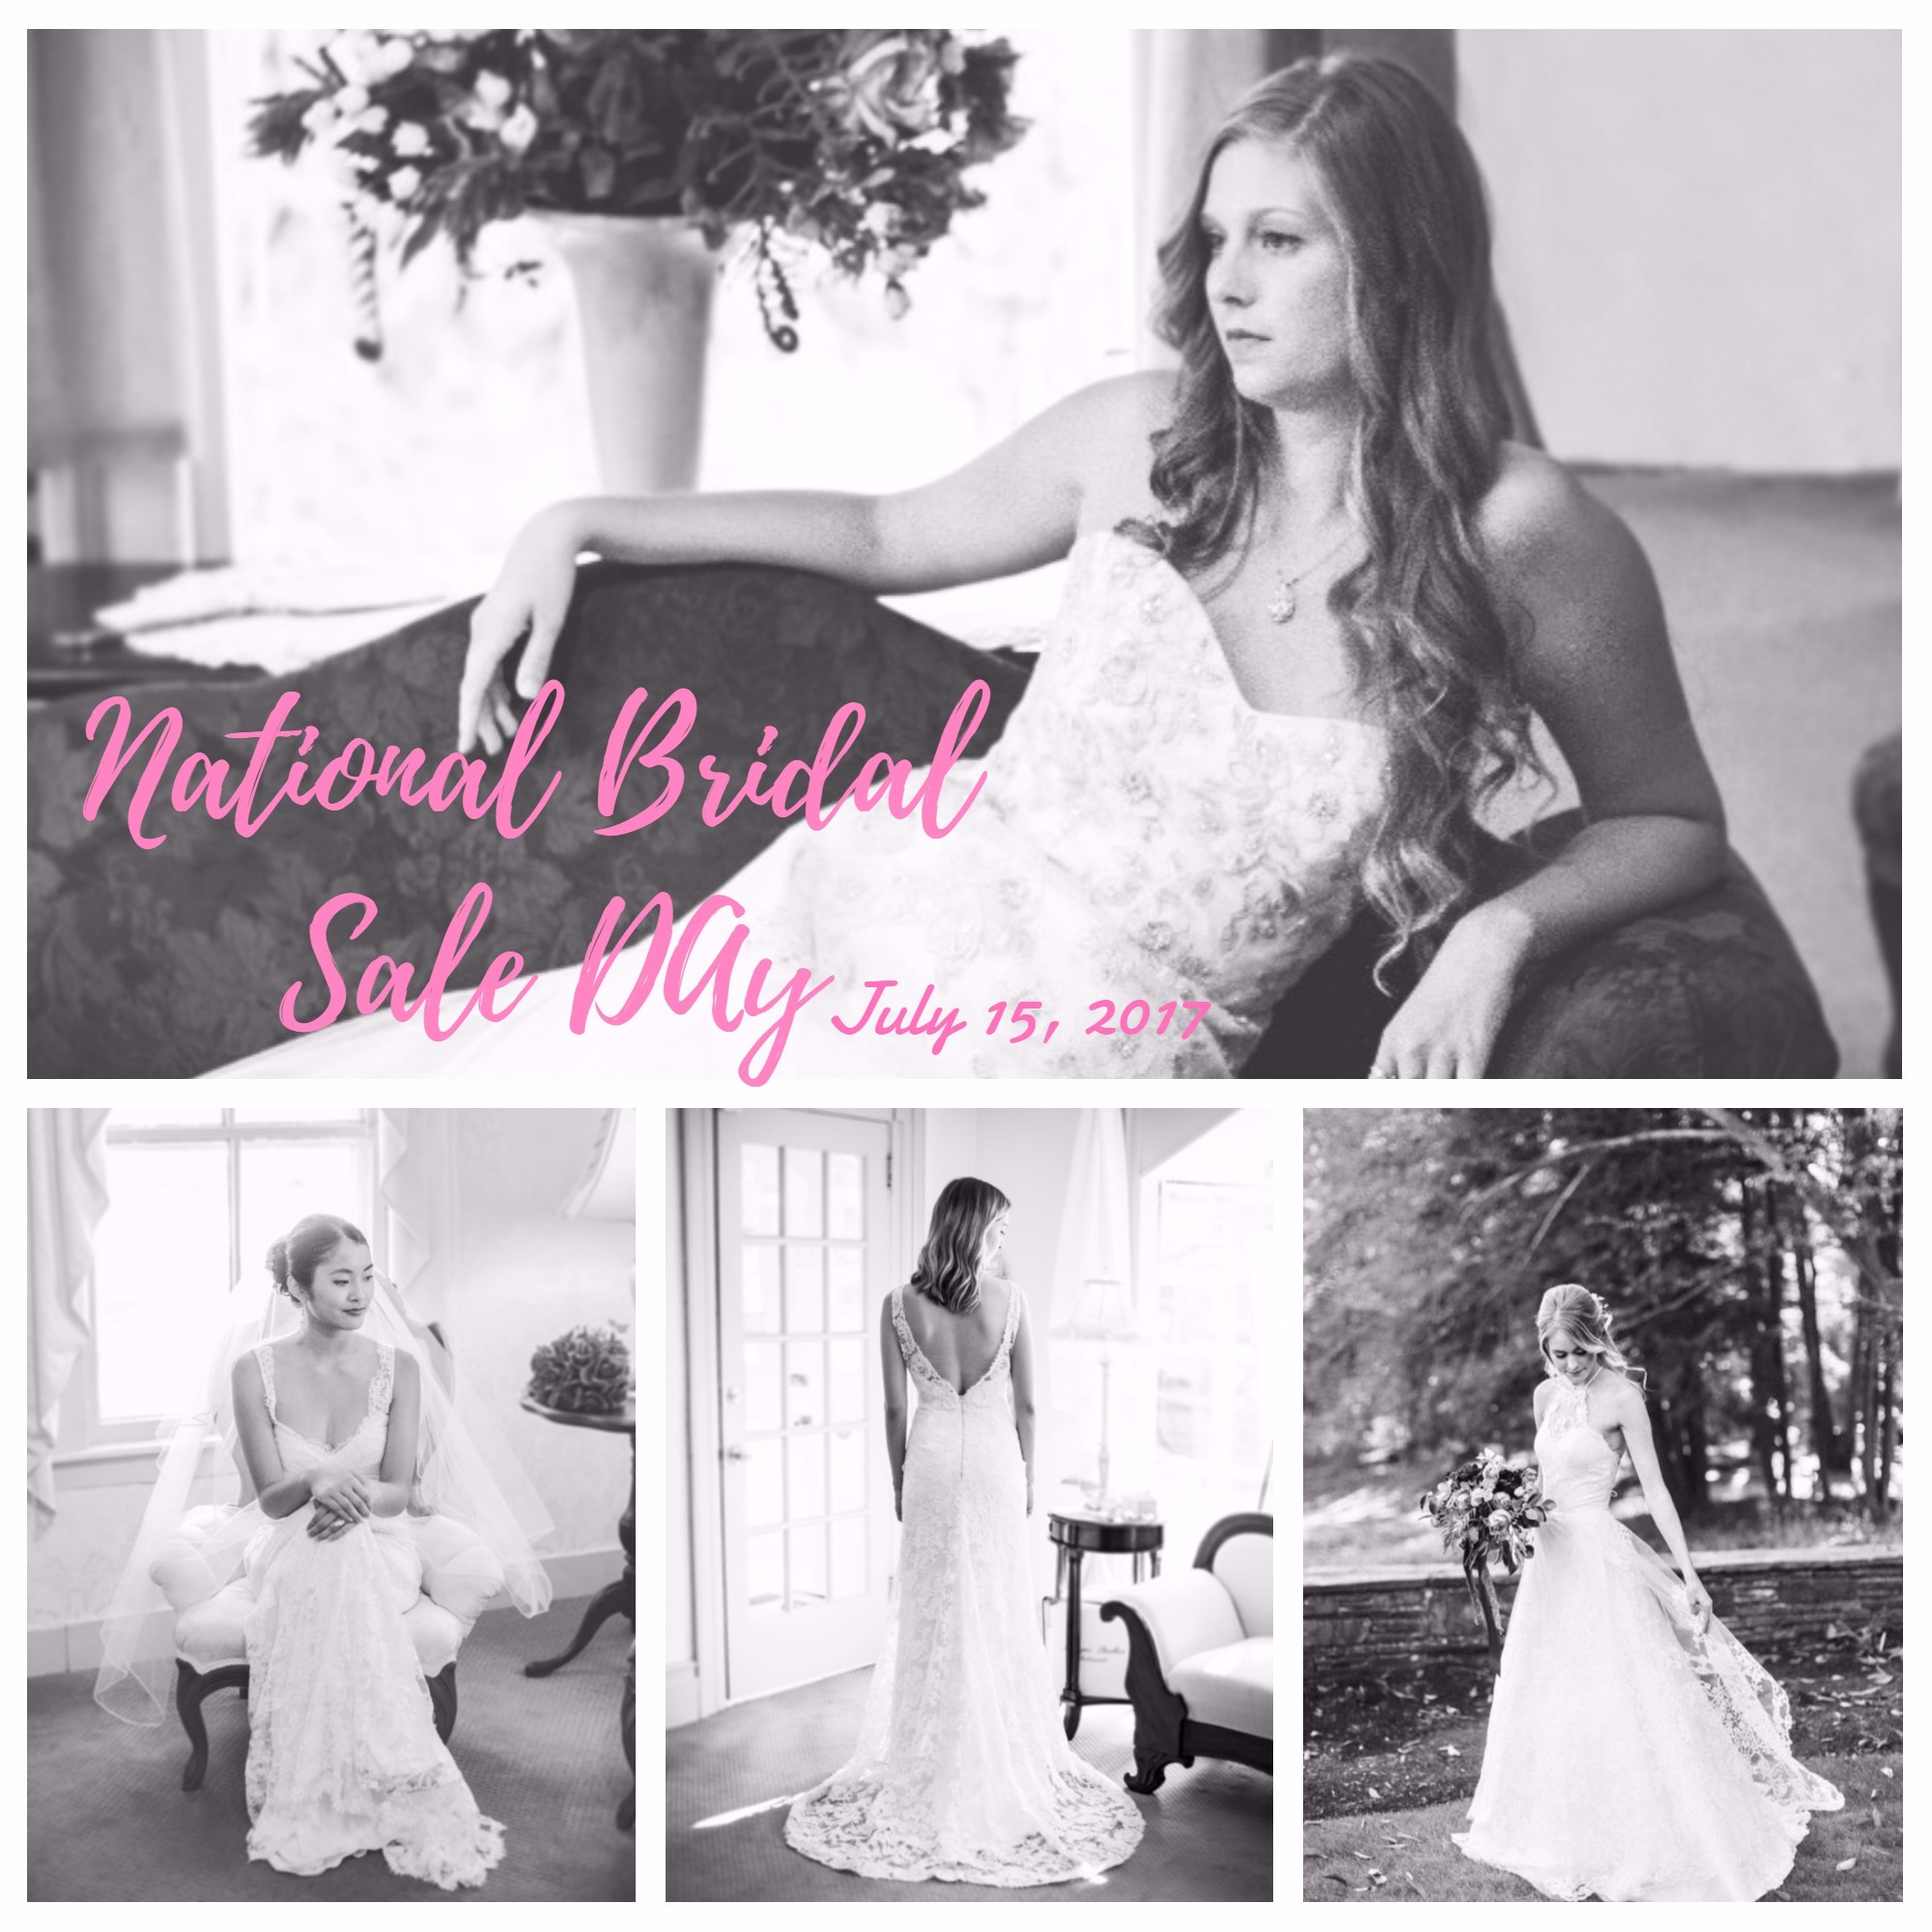 NATIONAL BRIDAL SALE DAY! 90% OFF STOCK GOWNS AT ABB!